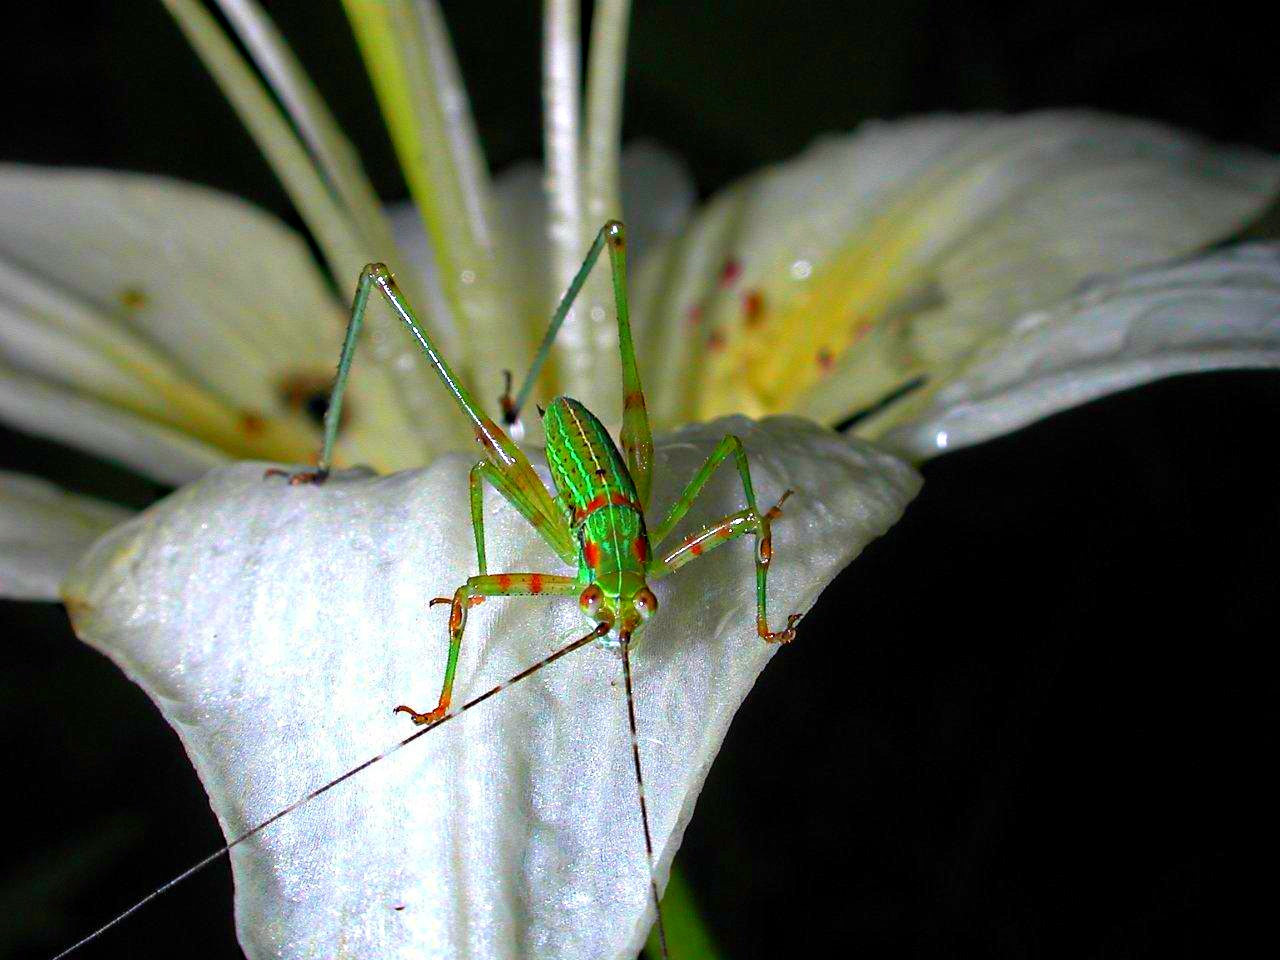 Katy in the Daylilly... Katydid in Flower... photo by Thomas Peace 2013